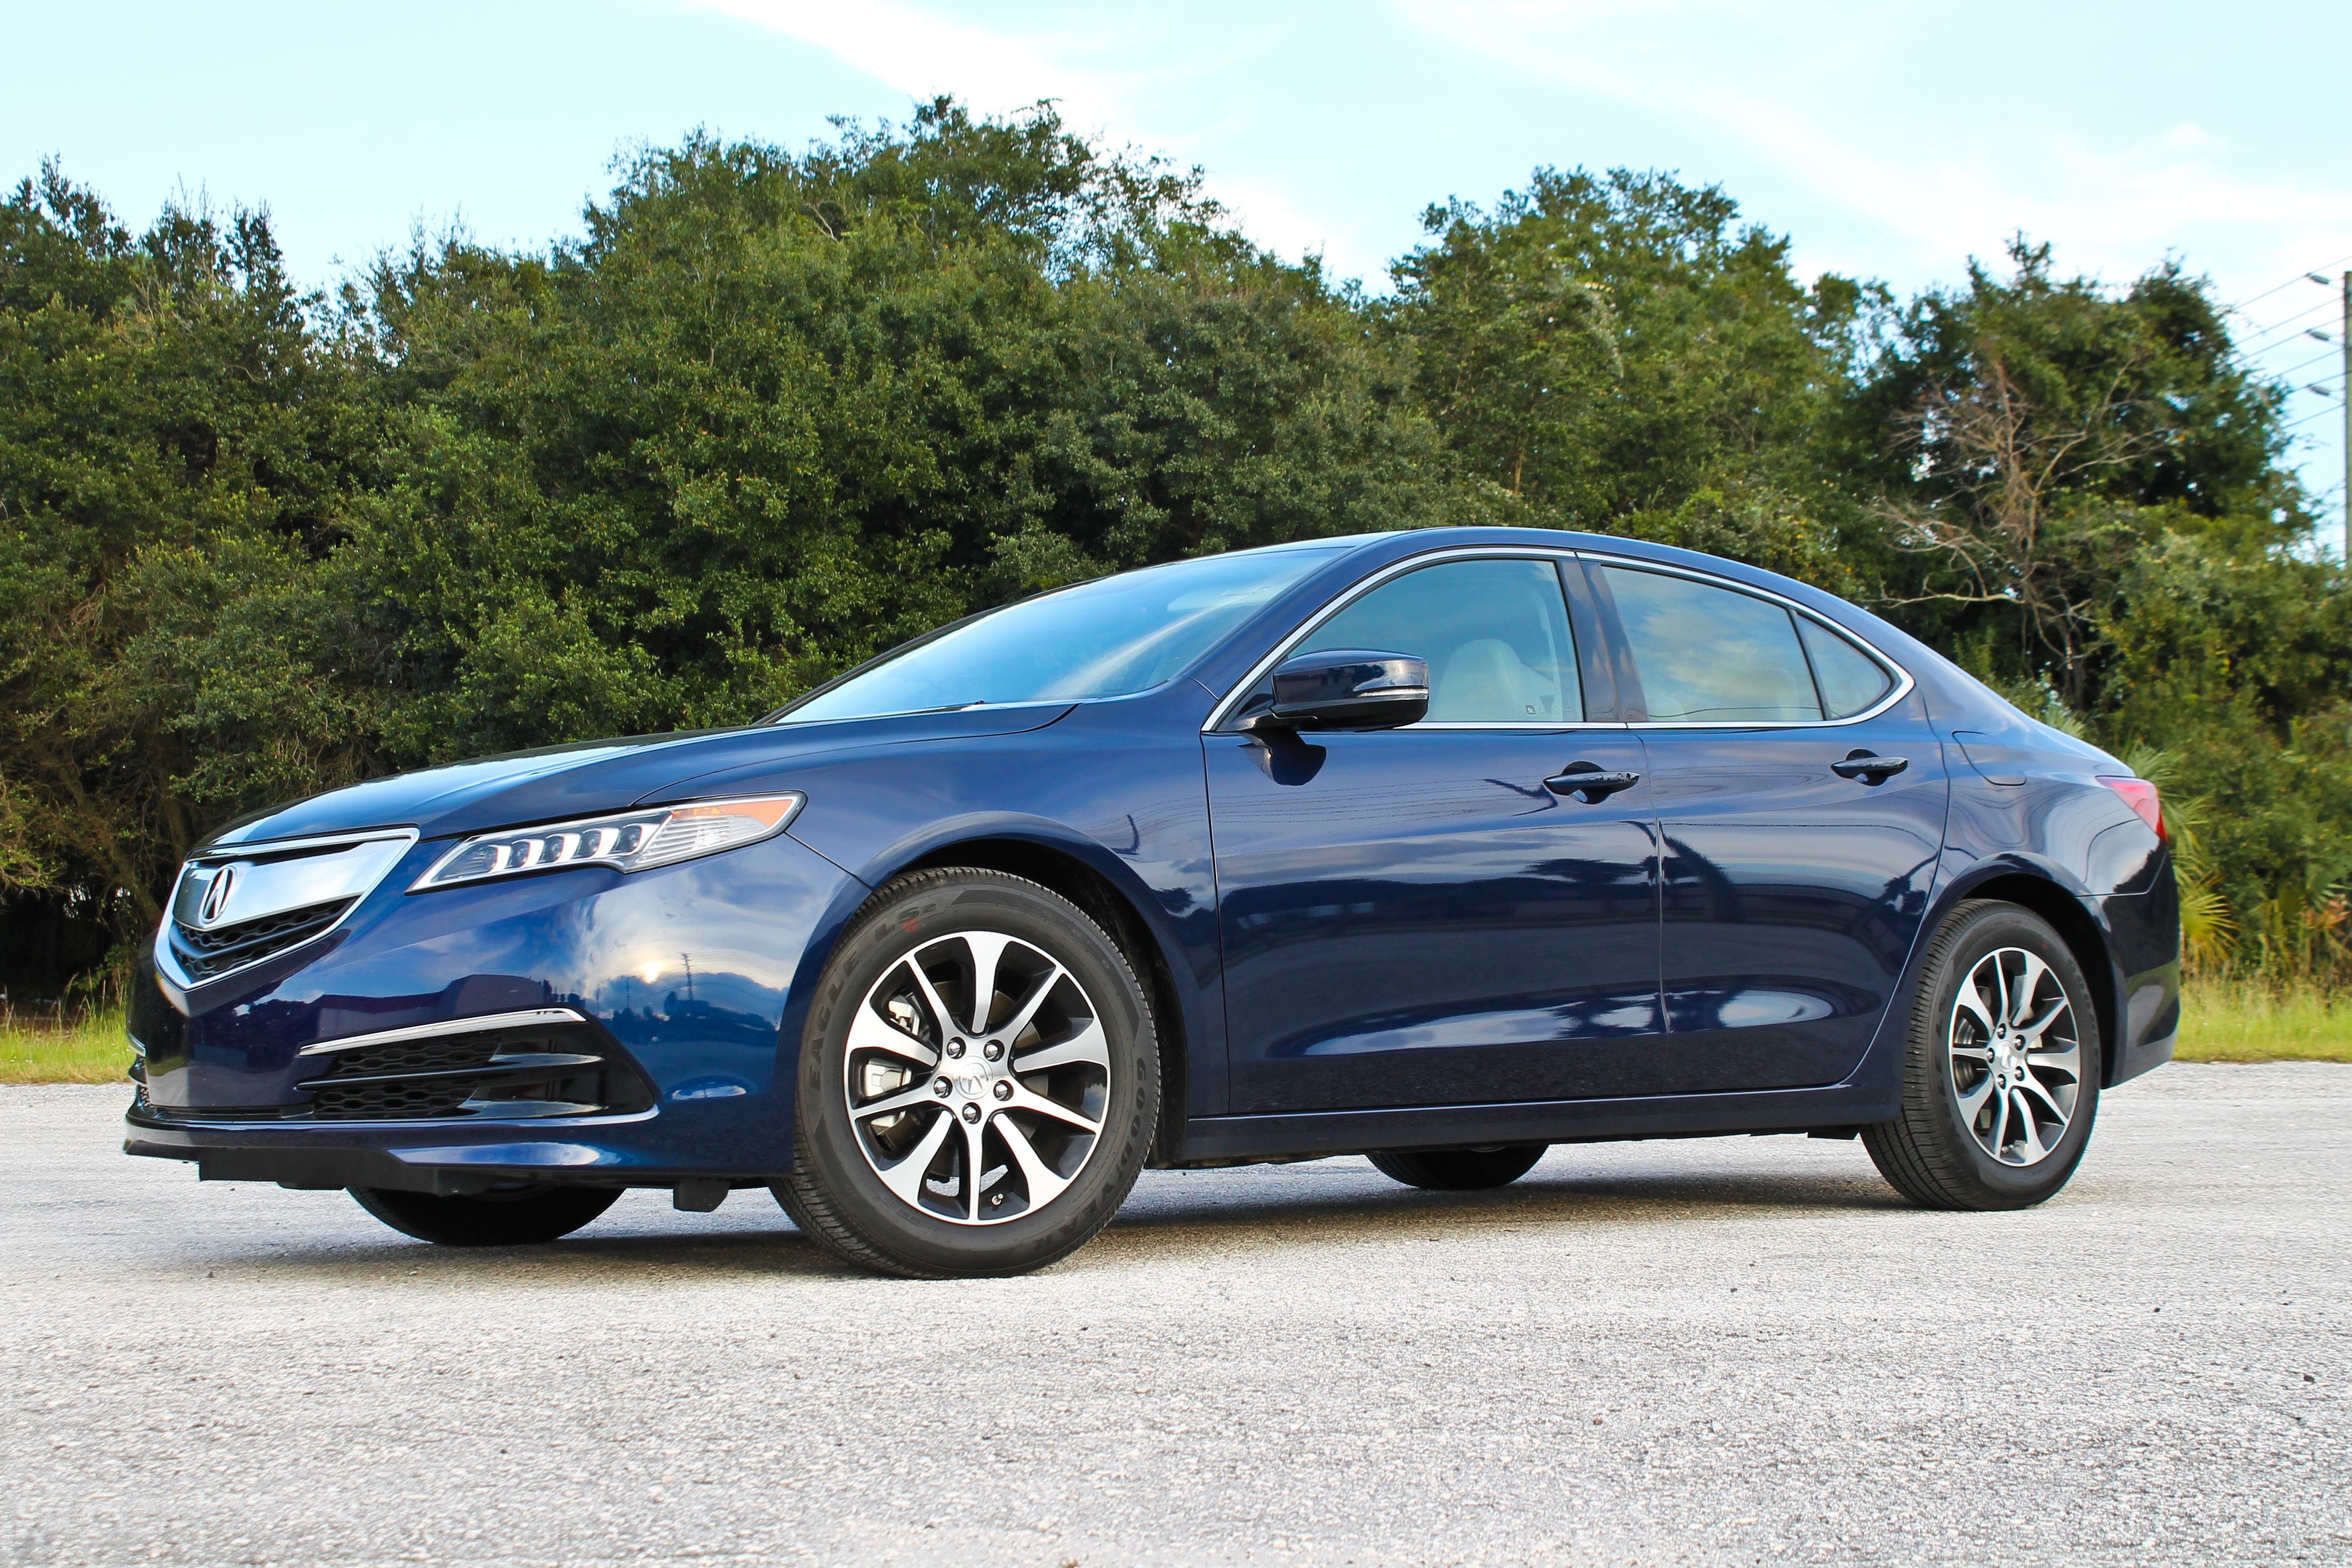 story mdx awd acura models fit tight agile transmission money but a img cars drive test suv